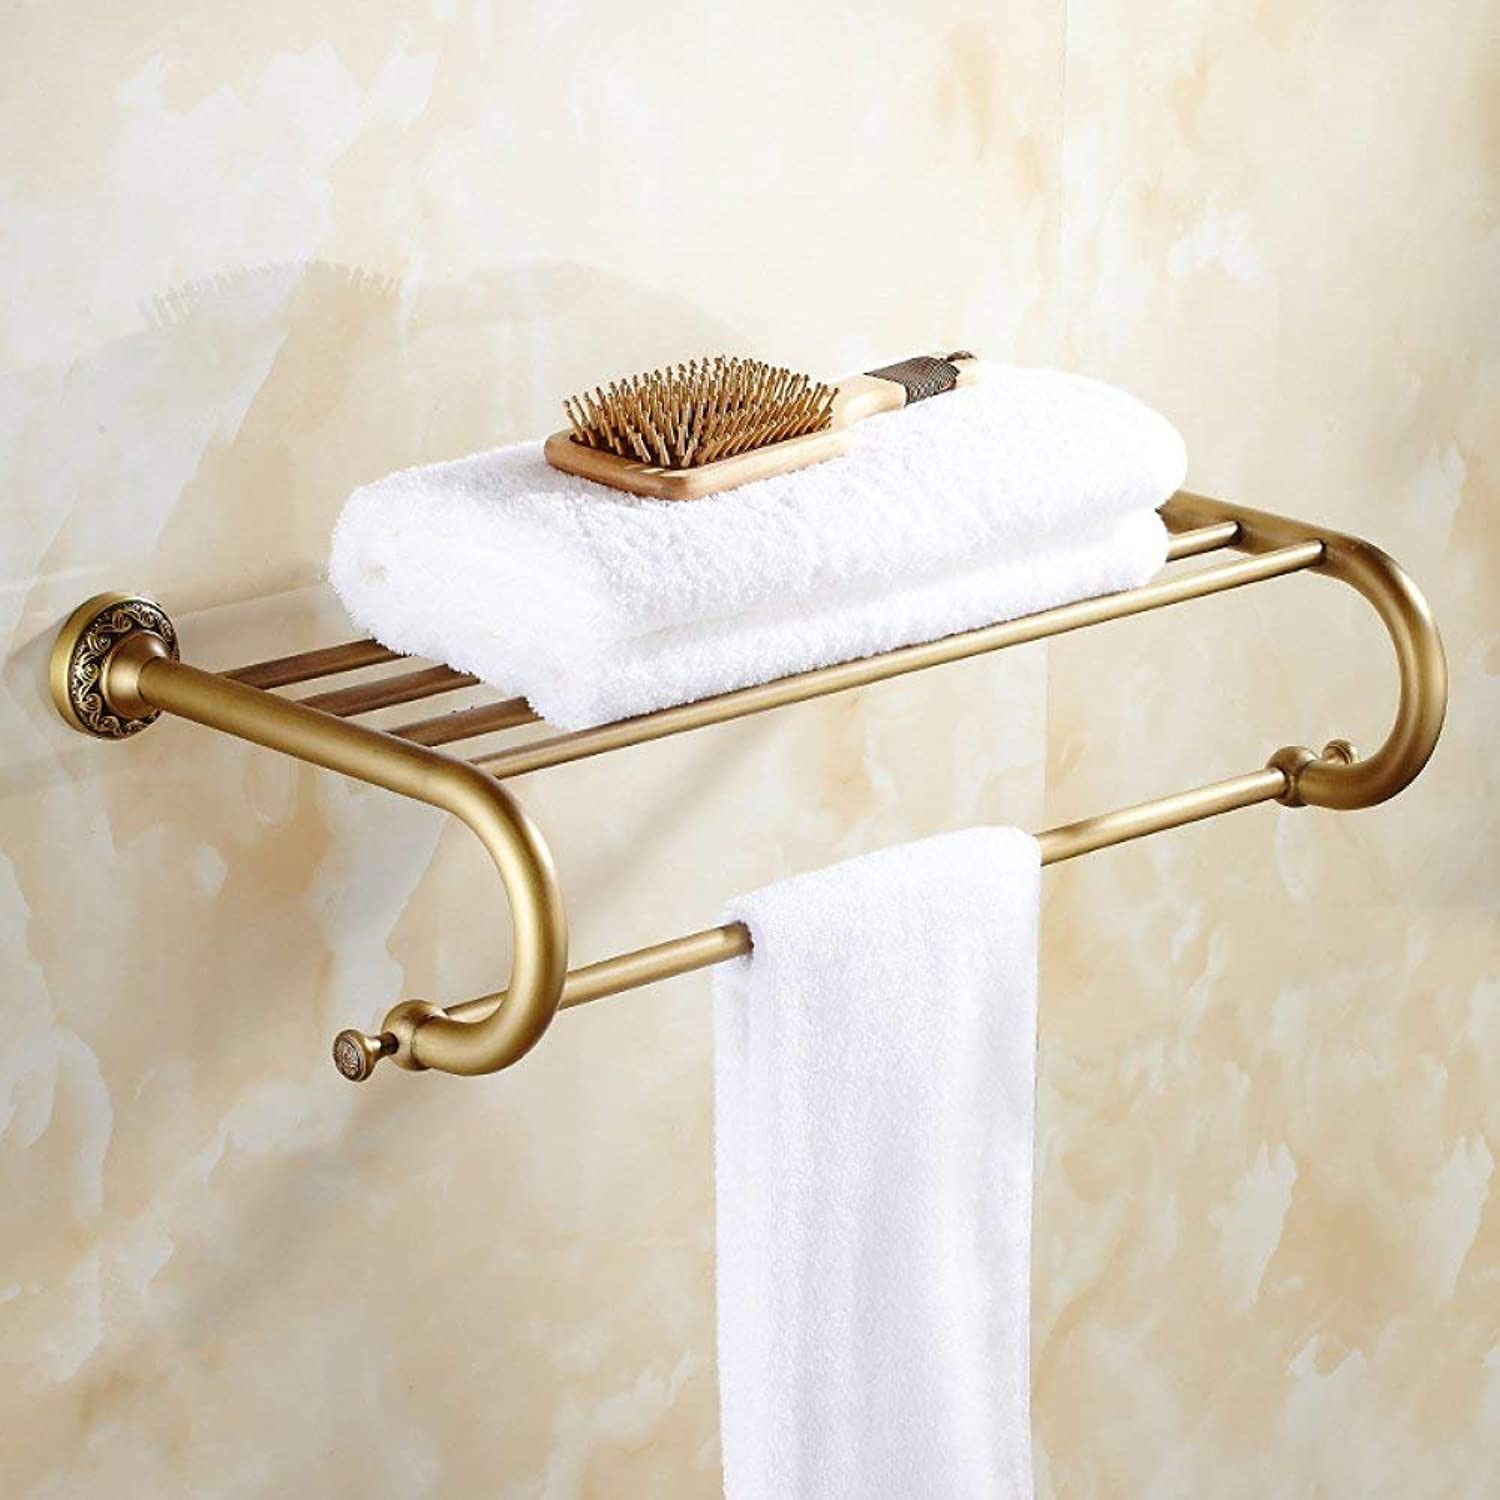 Antique Copper Bathroom Hair-Bath, The Cabinet Dry-Towels All The Baths of Copper Hardware Pendant,D